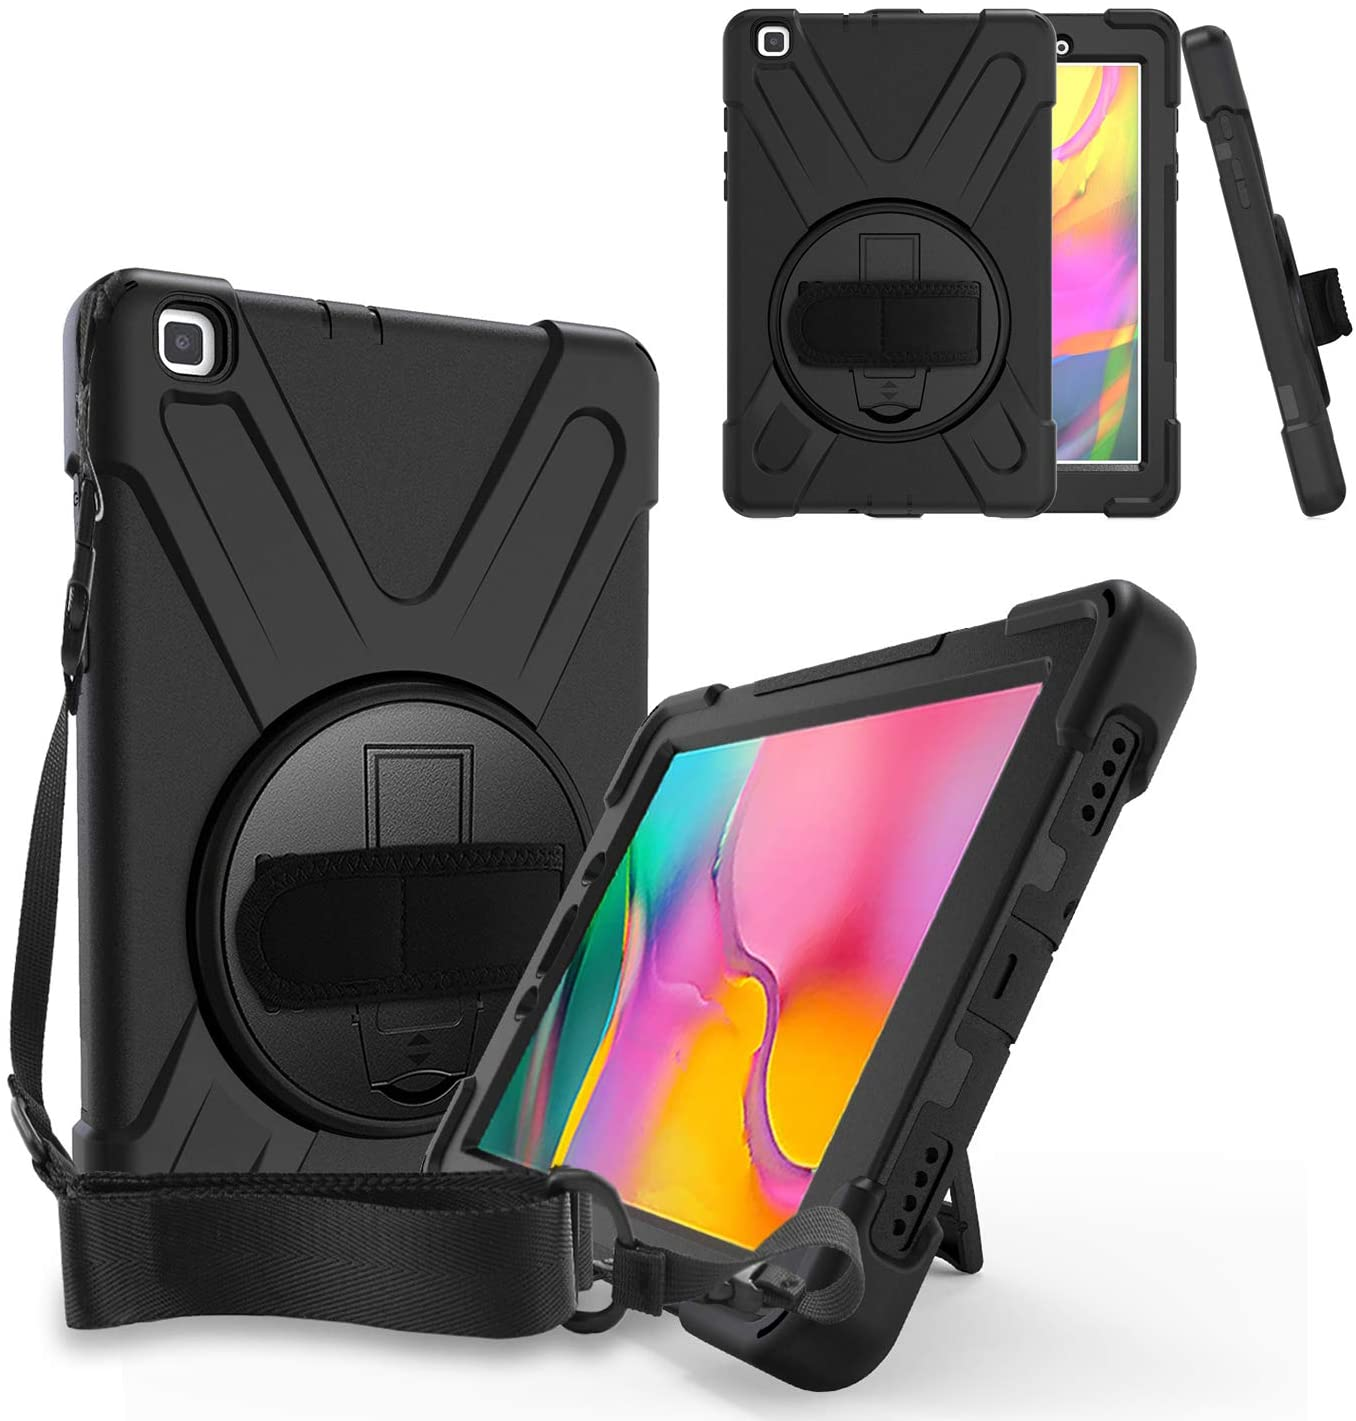 KIQ Galaxy Tab A 8.0 P200 Case, Shockproof Heavy Duty Impact Drop Protection Stand Screen Protector Carrying Strap for Samsung Galaxy Tab A 8.0 2019 SM-P200 (Shield Black)